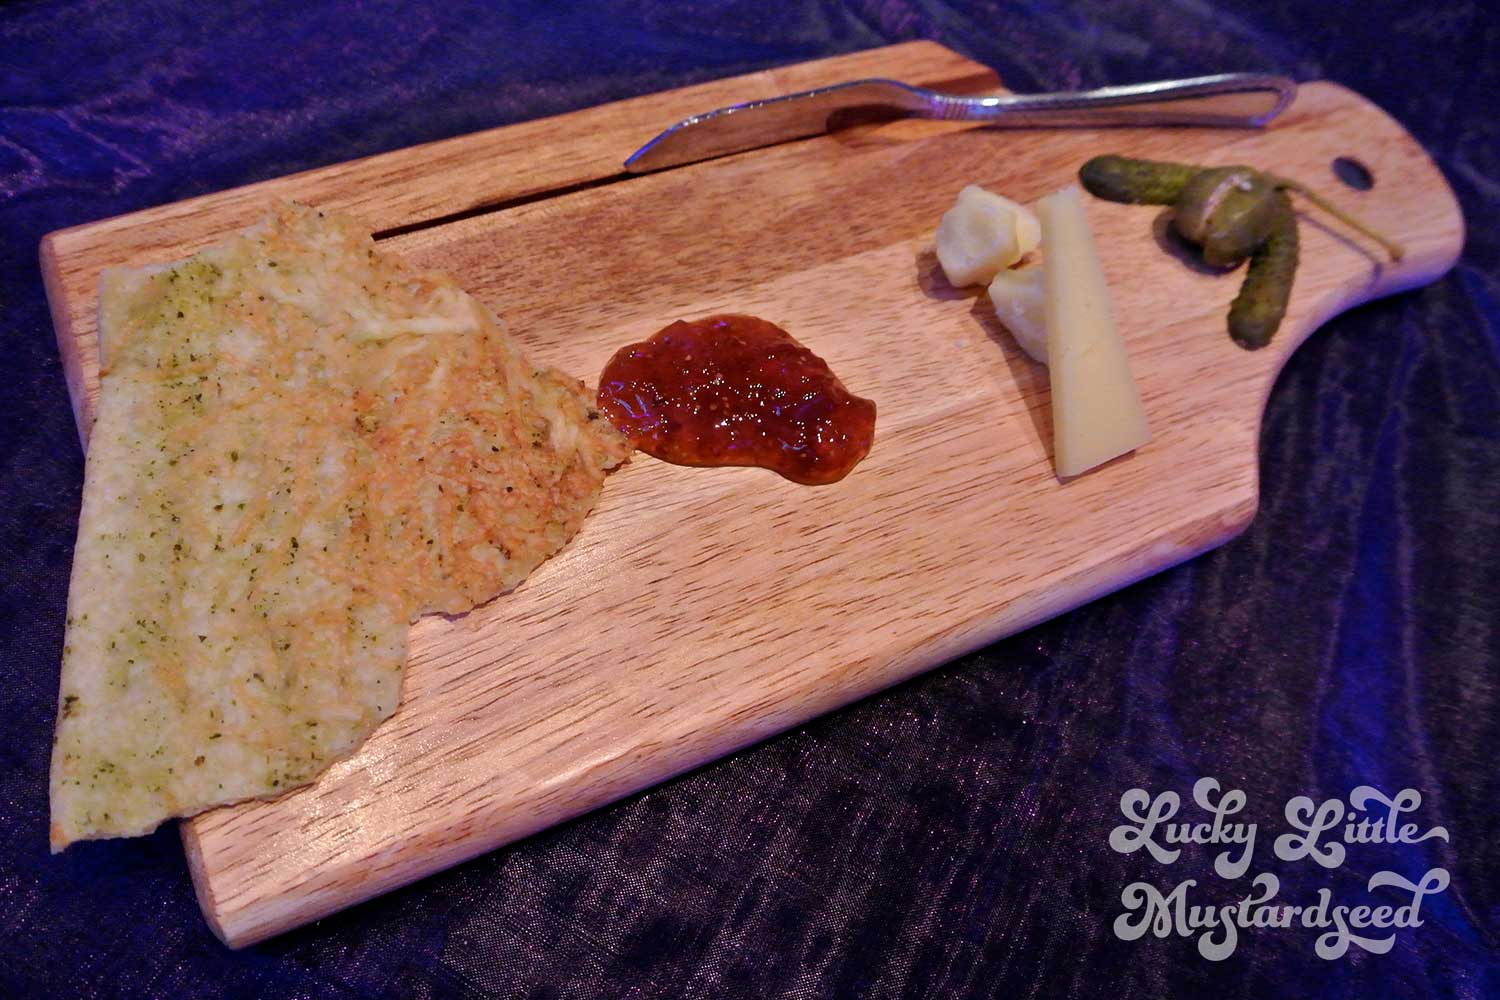 FWSD Culinary Couture: London